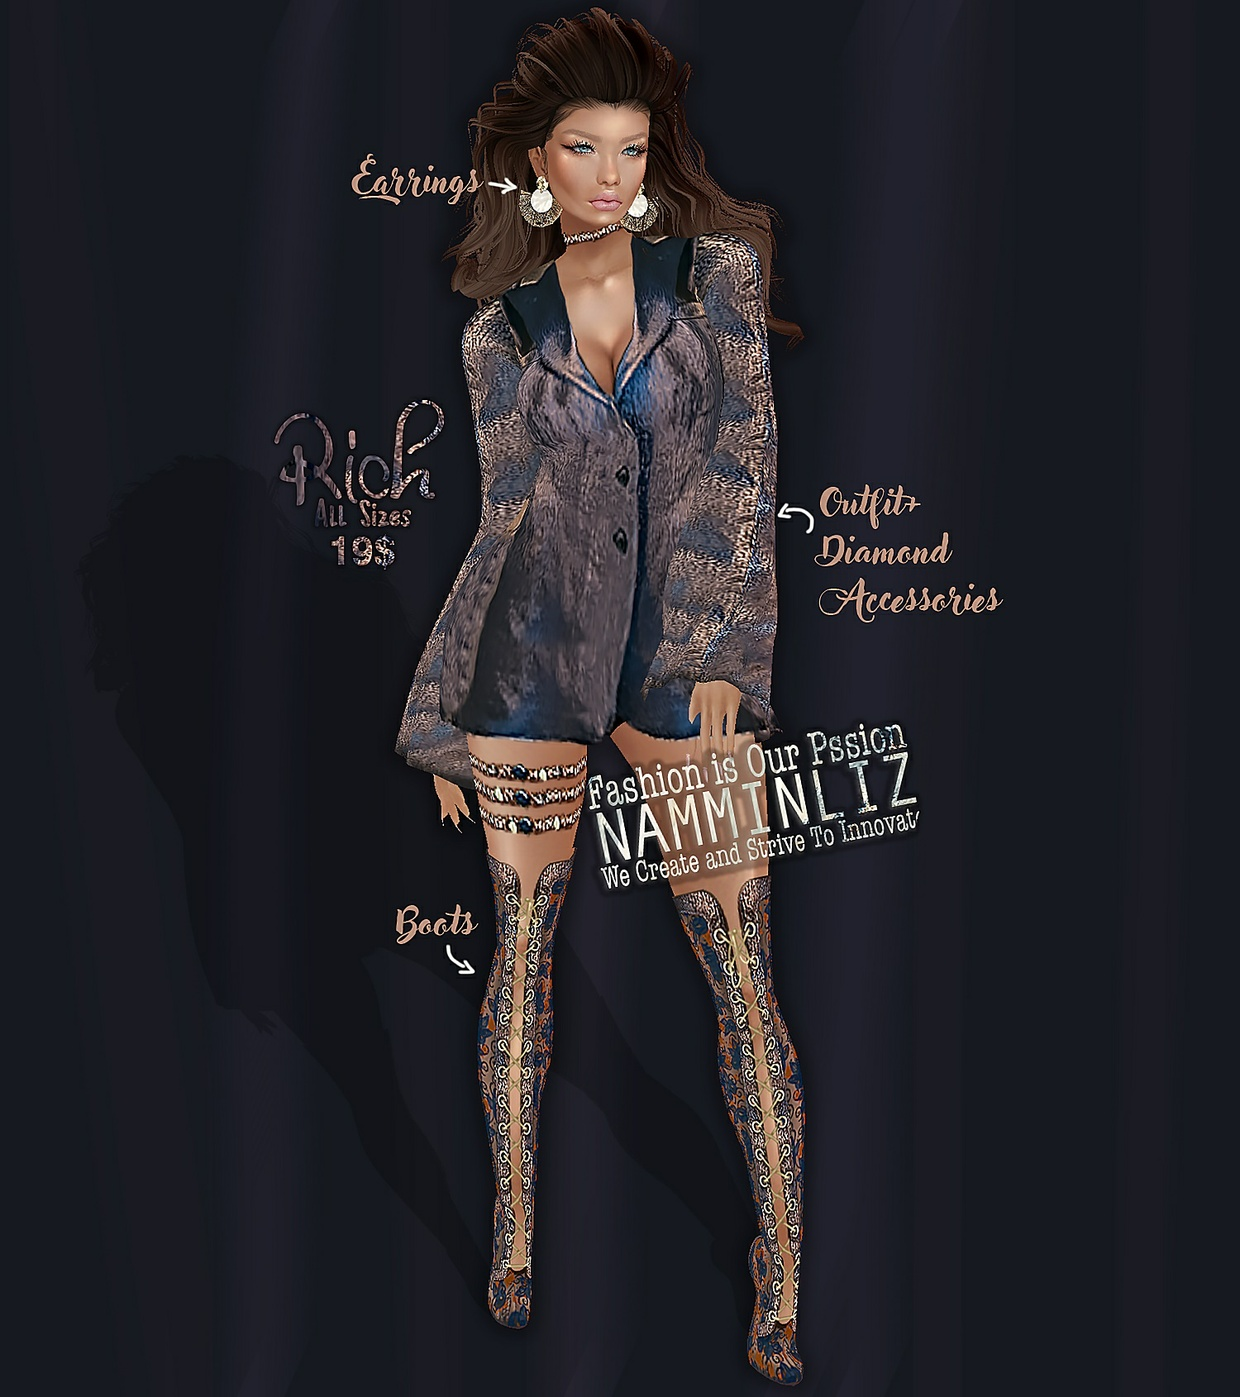 Rich Bibirasta Outfit All sizes w/Accessories + Earrings + Shoes + IMVU Icon GIF & PSD and  Ads PNG